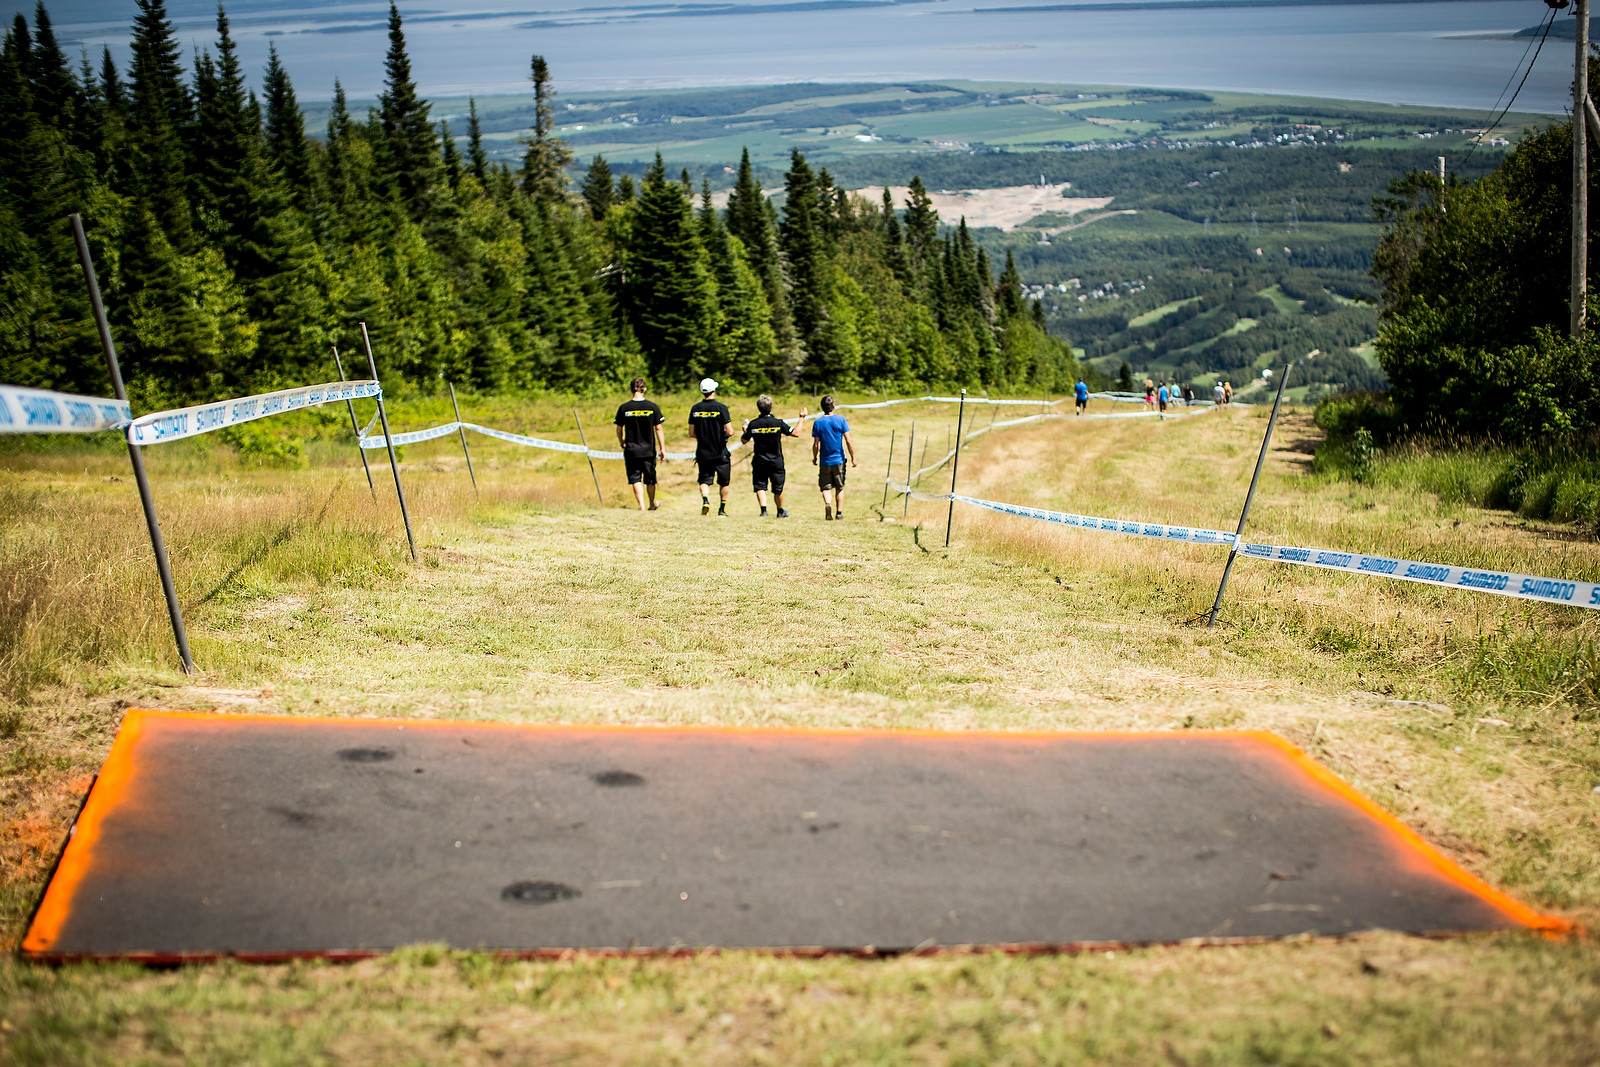 A Faster, Smoother Mont Sainte Anne World Cup DH Course - PIT BITS, Track Walk - It's On at Mont Sainte Anne World Cup - Mountain Biking Pictures - Vital MTB